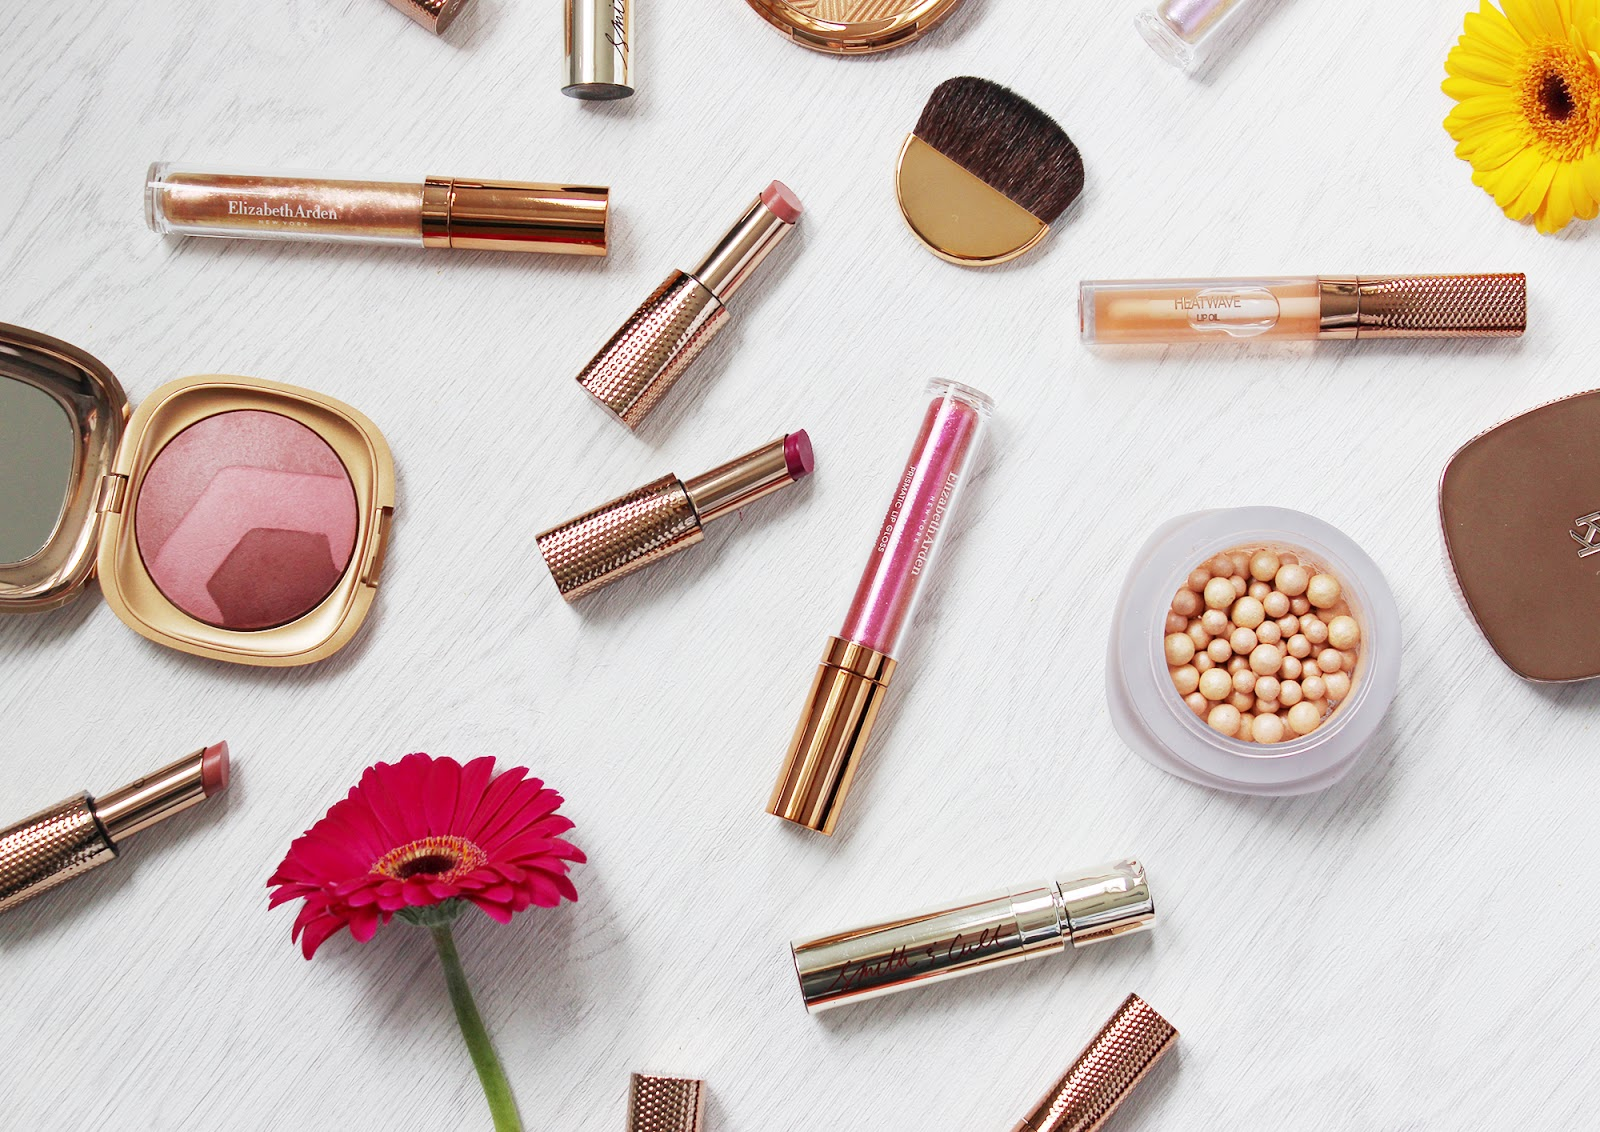 Kiko, Elizabeth Arden and Smith & Cult limited edition summer products